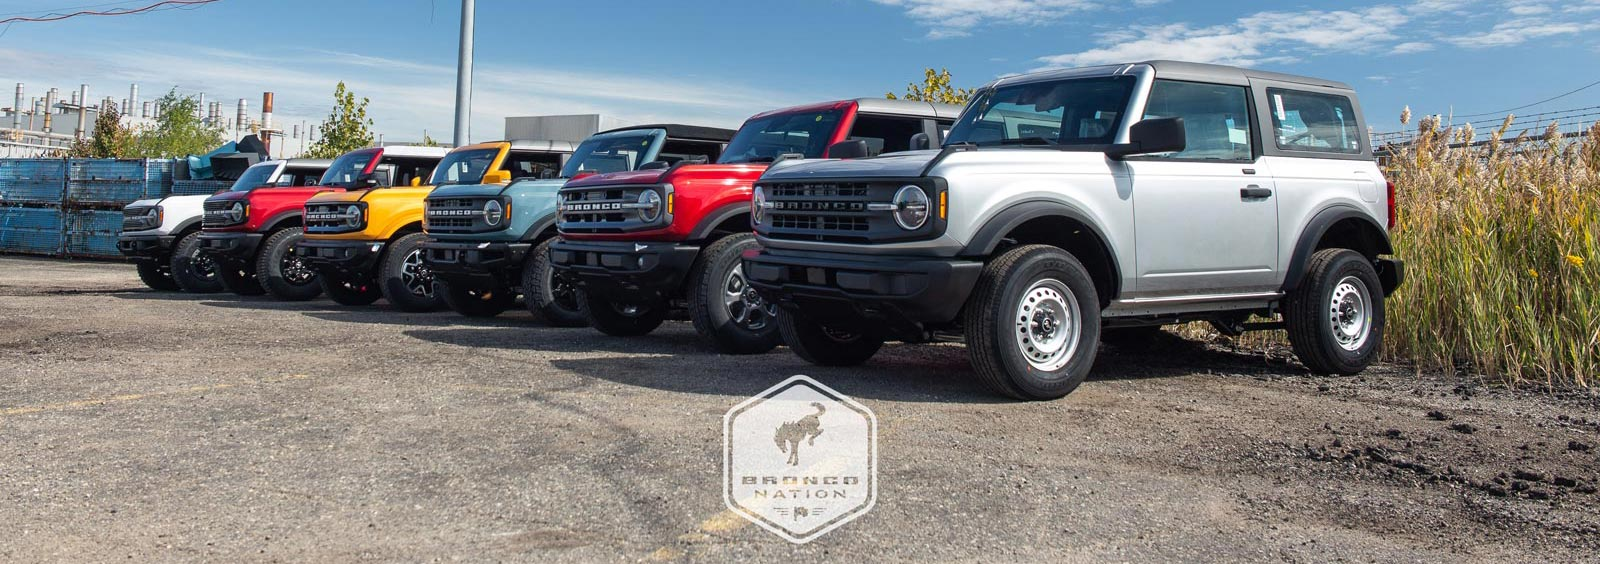 2021 Ford Bronco Fuel Economy Ratings